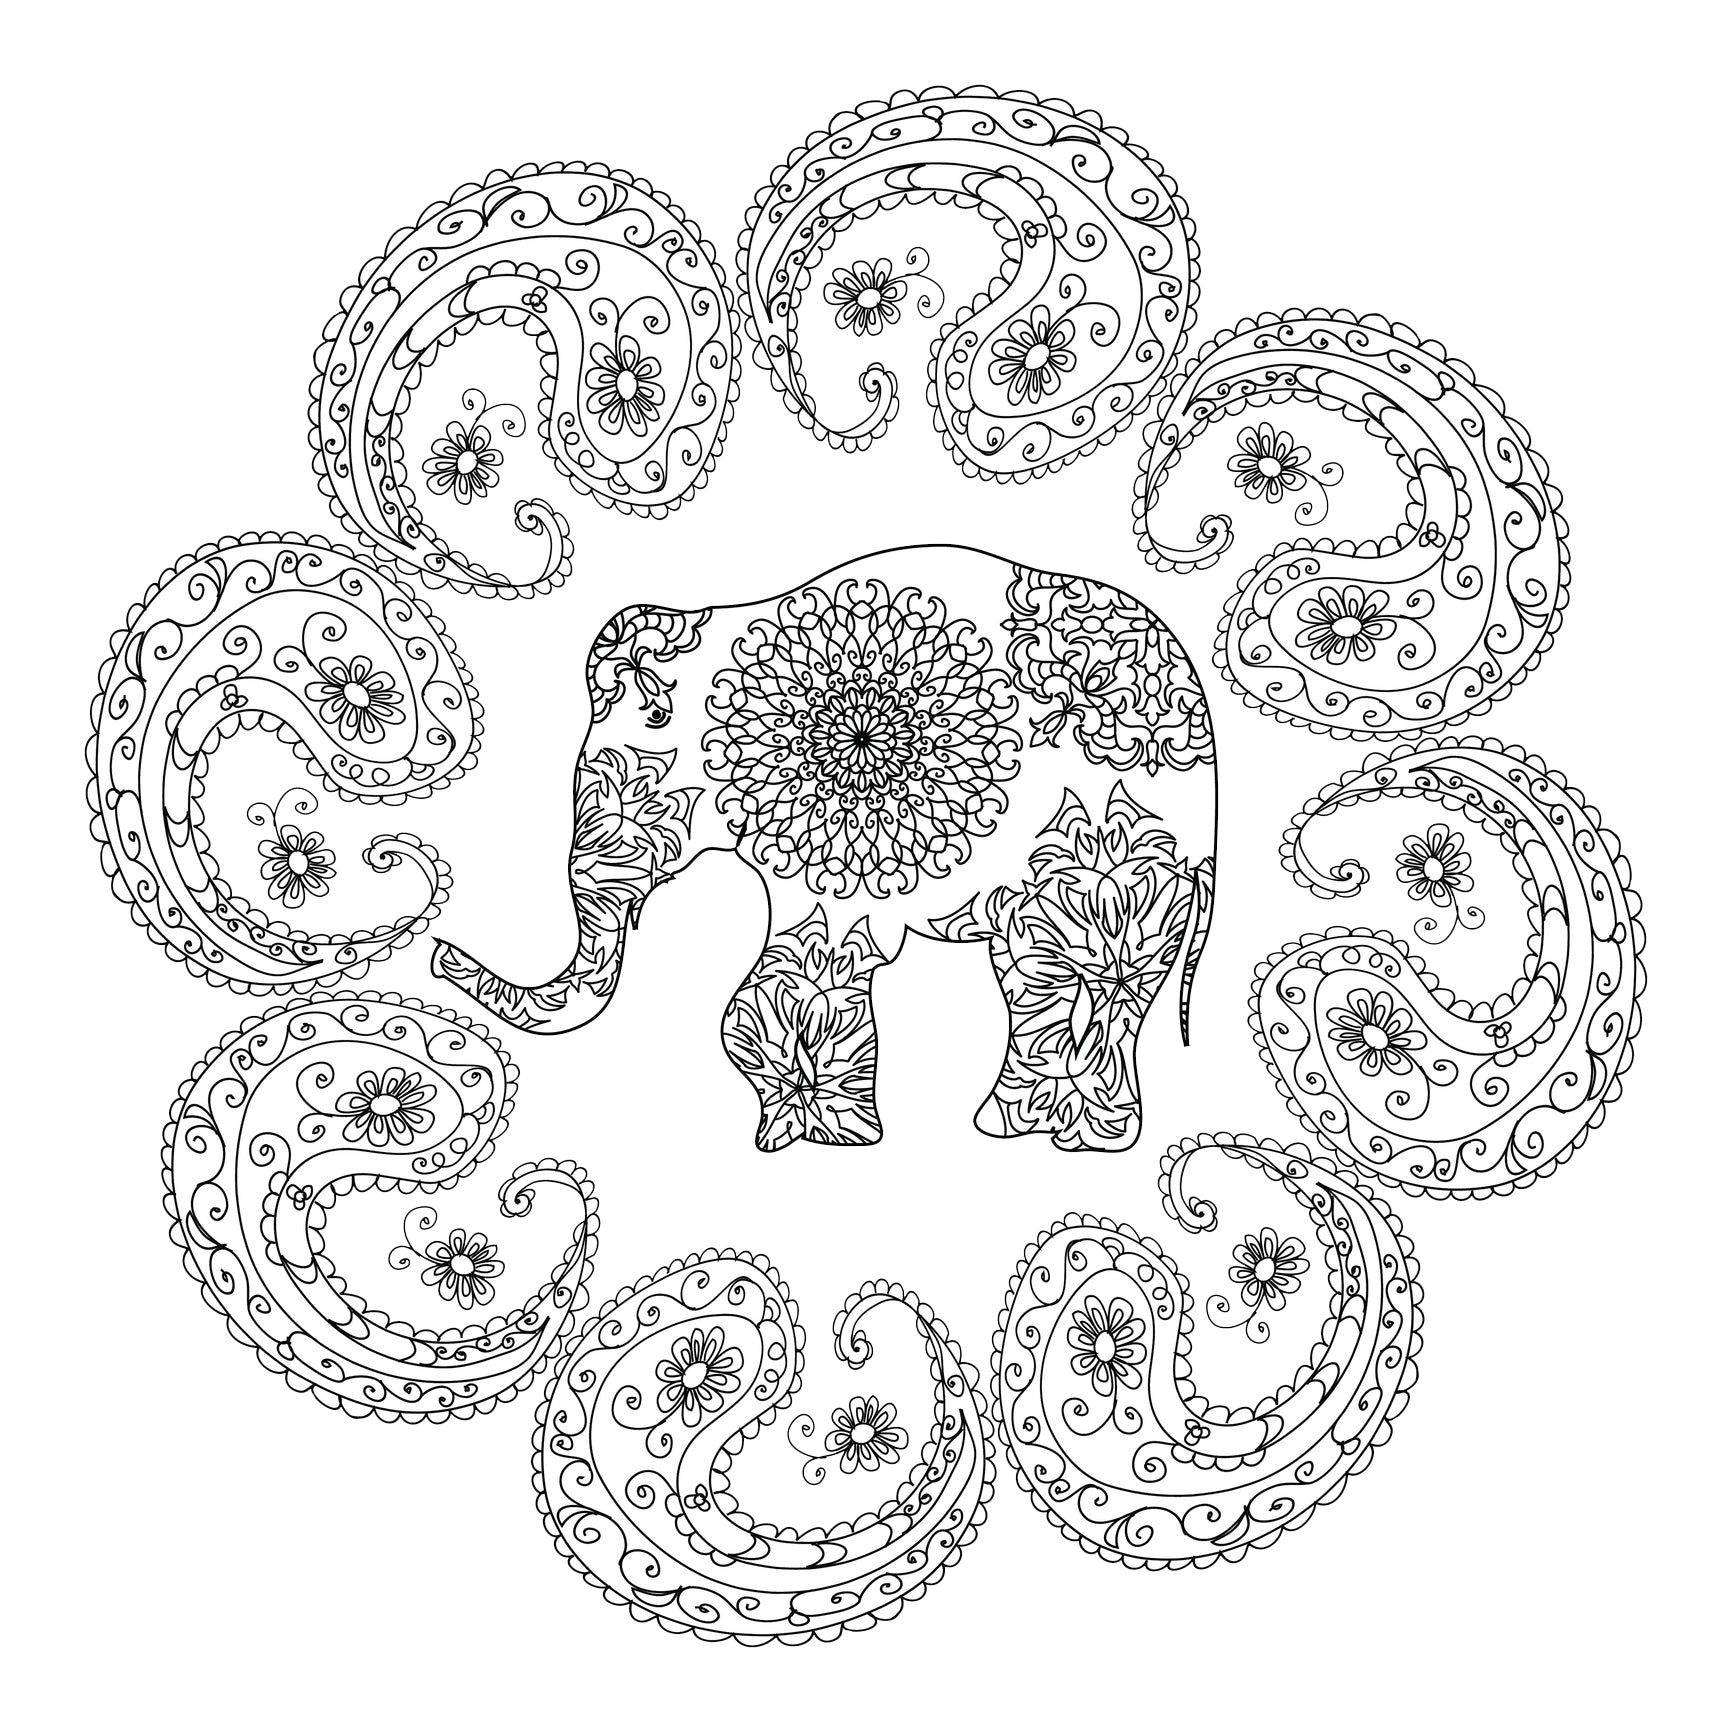 Pretty Mandala Patterned Elephant with Paisley Leaf Border Vinyl Decal Sticker